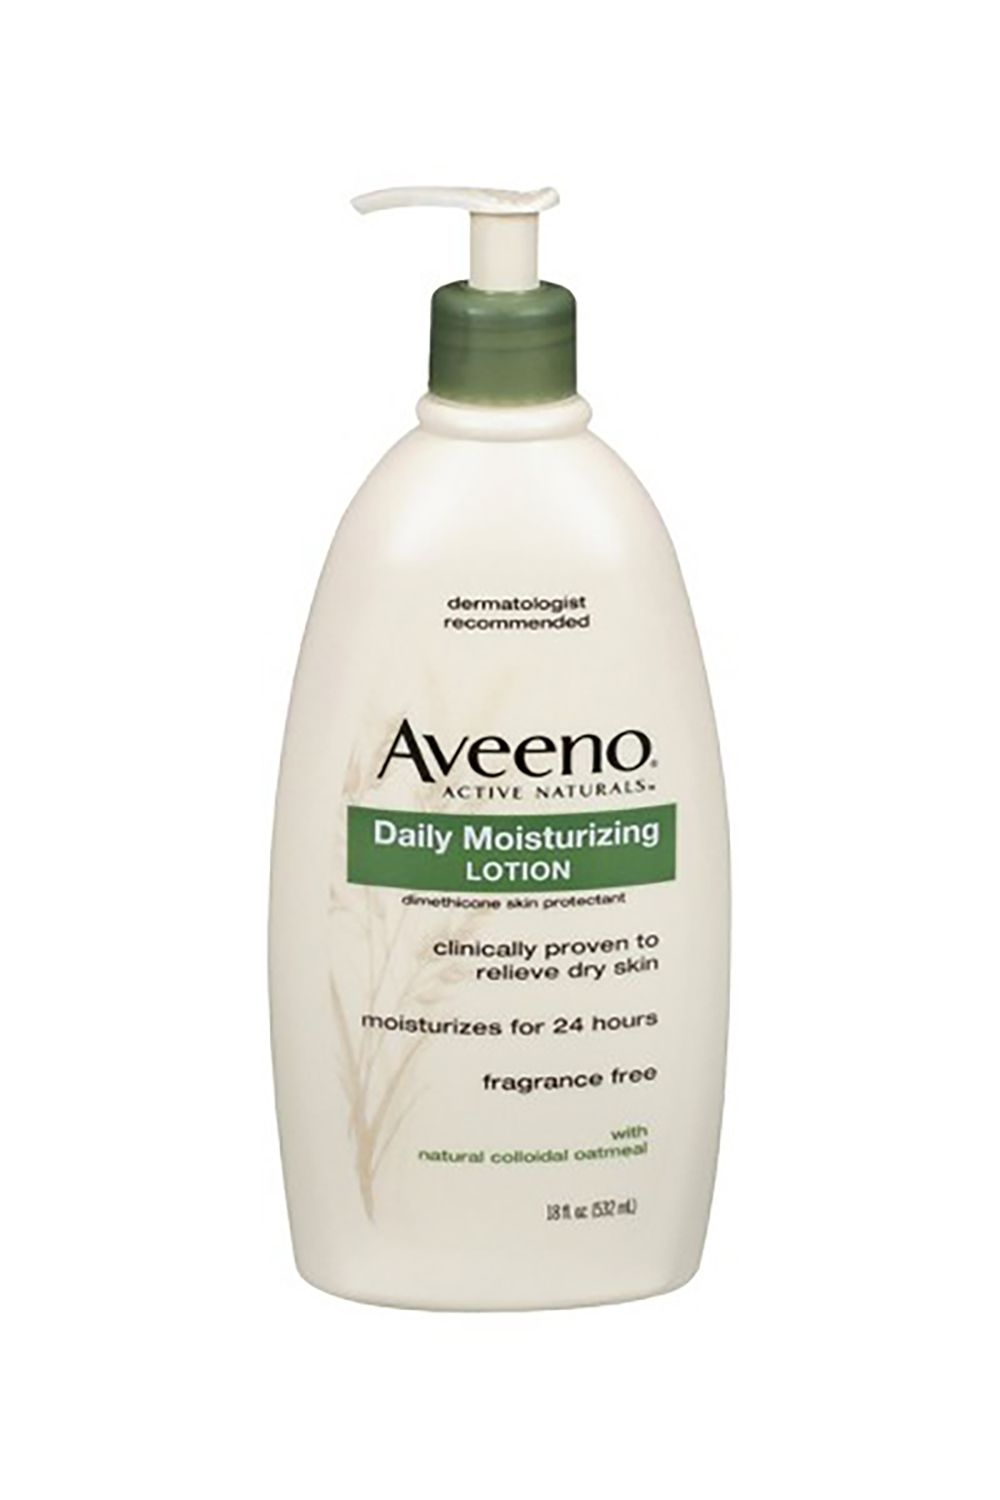 "<p>The chichi, almond-soufflé-scented ones may come with honey dippers, but there's really no compelling *need* to drop $$$ on body lotion. Drugstore brands work just fine.</p><p><strong>Aveeno Daily Moisturizing Lotion, $7, <a href=""http://rstyle.me/n/buvtddbqb8f"" target=""_blank"">target.com</a>.</strong><br></p>"